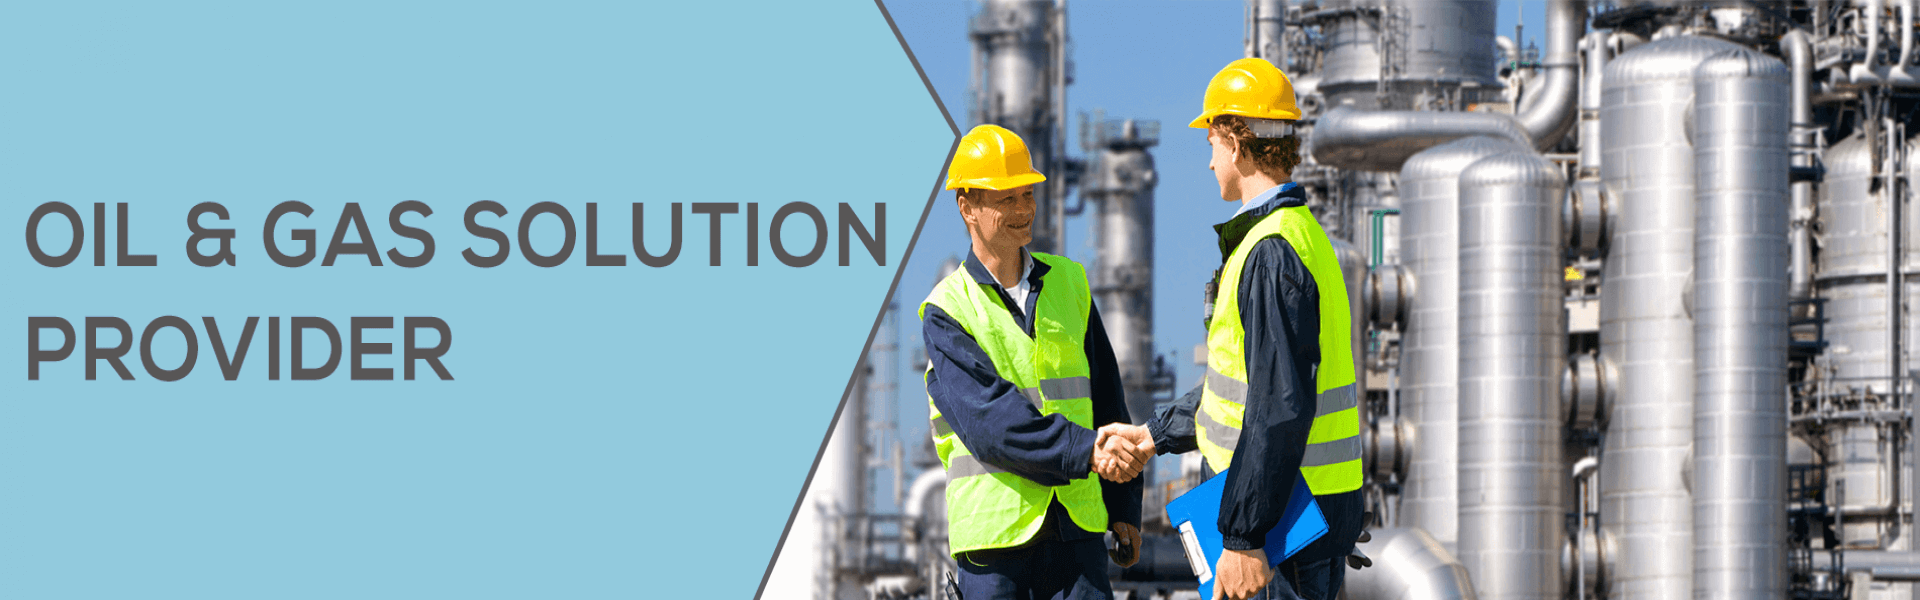 Oil And Gas Solution Provider USA | Oil And Gas Solution